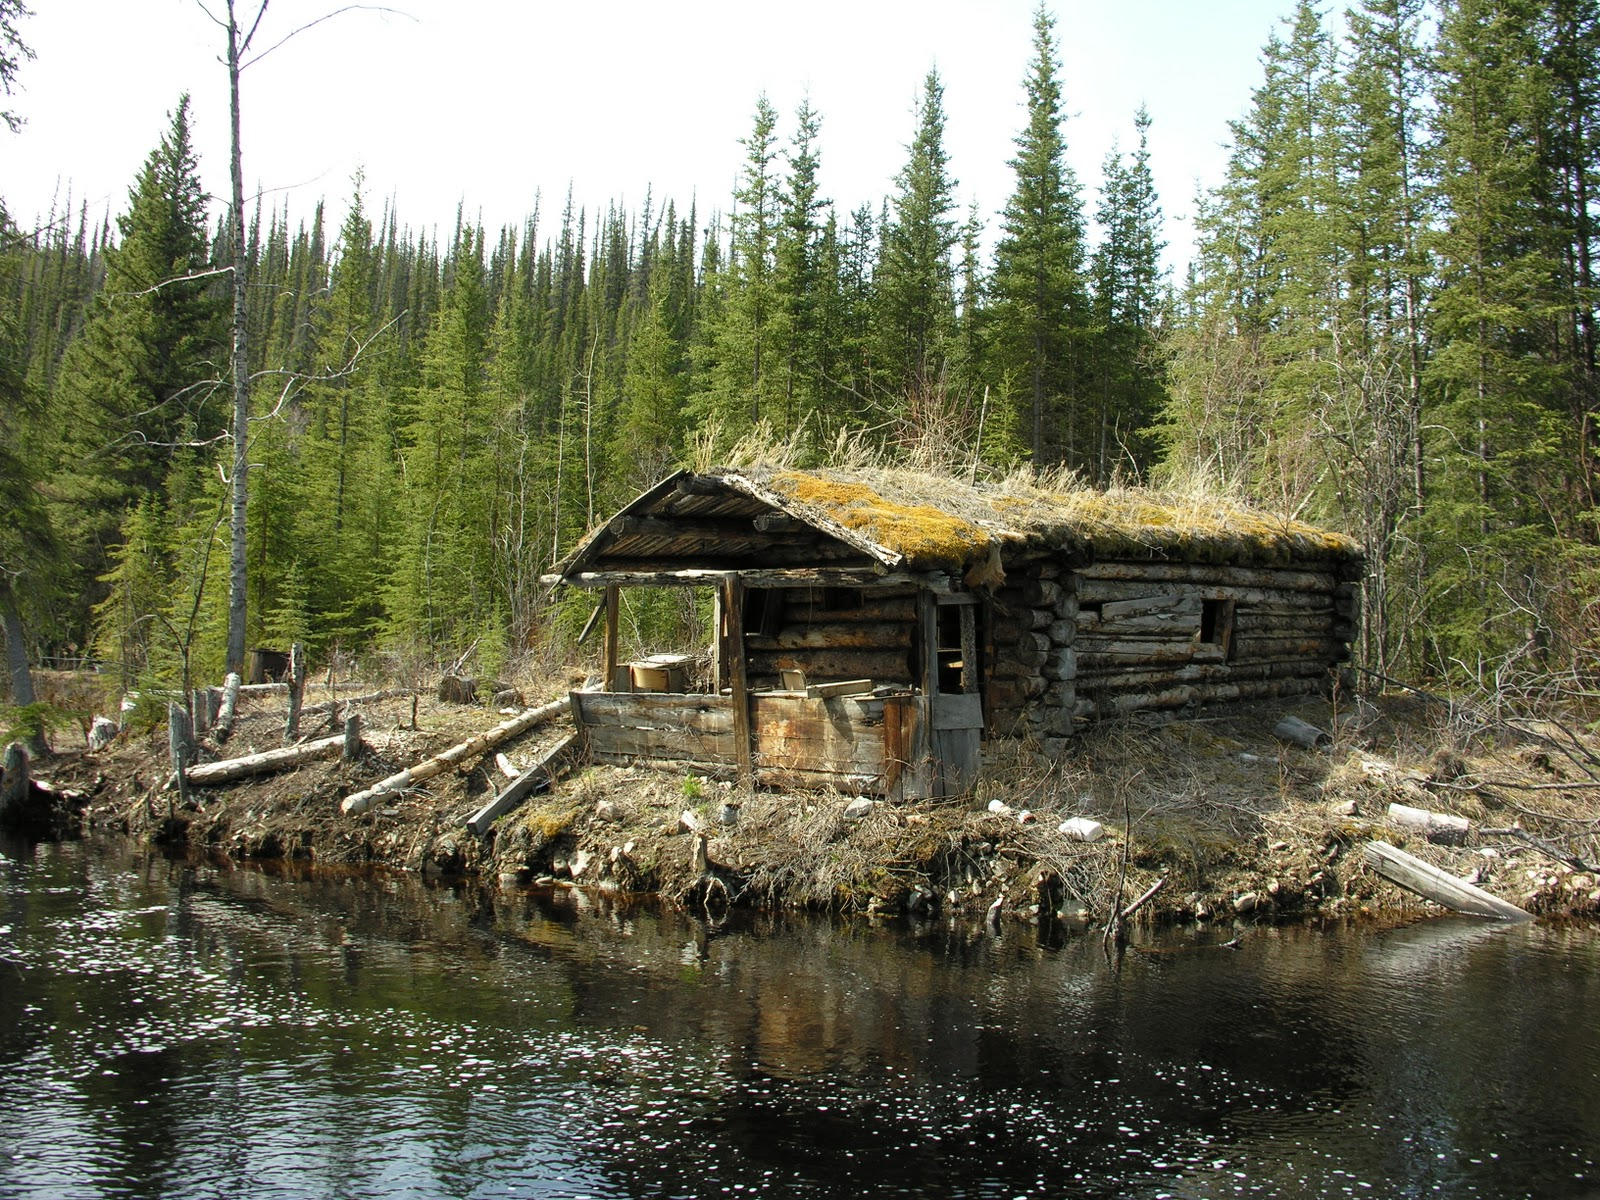 Lloyd S Blog Log Cabin With Sod Roof In Yukon